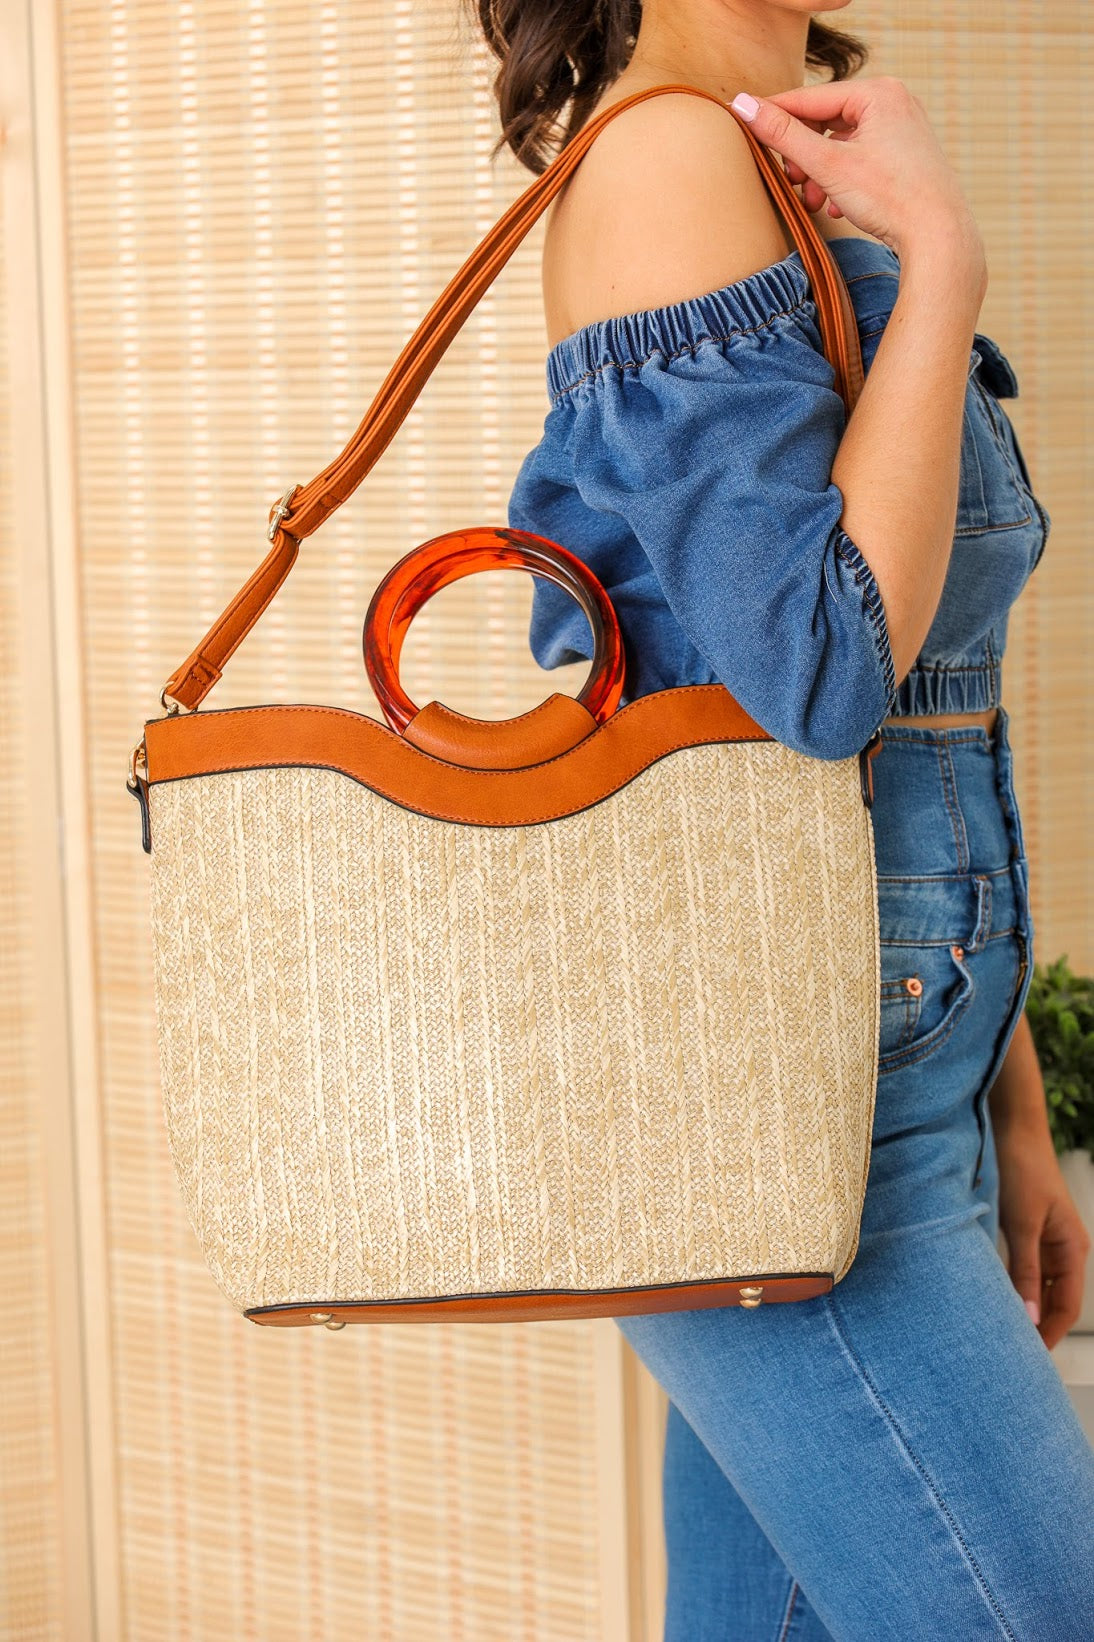 You Deserve It Resin Handle Bamboo Straw Tote Bag